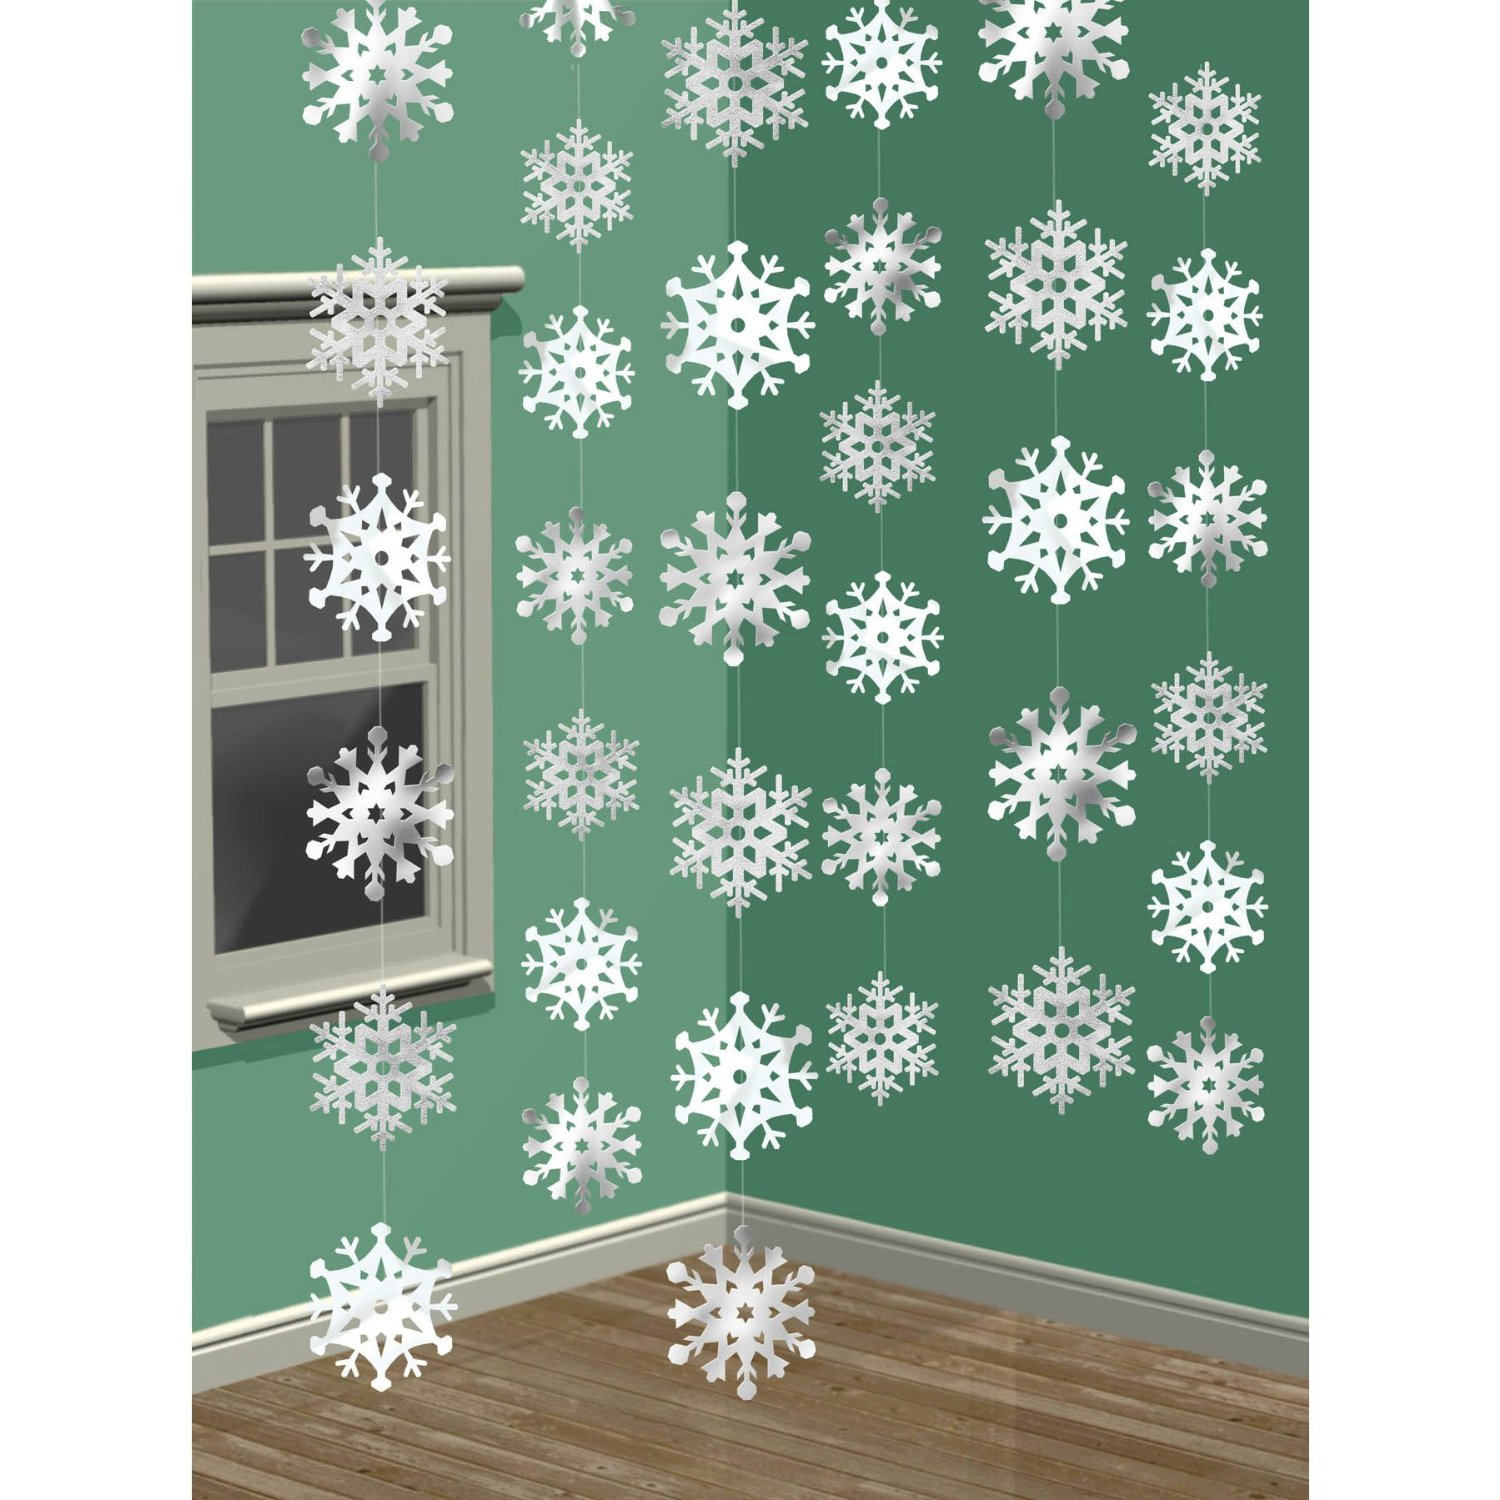 "Amscan Winter Wonderland Christmas 3-D Snowflake Hanging Party Decoration, White, 14 1/4"" x 13"""